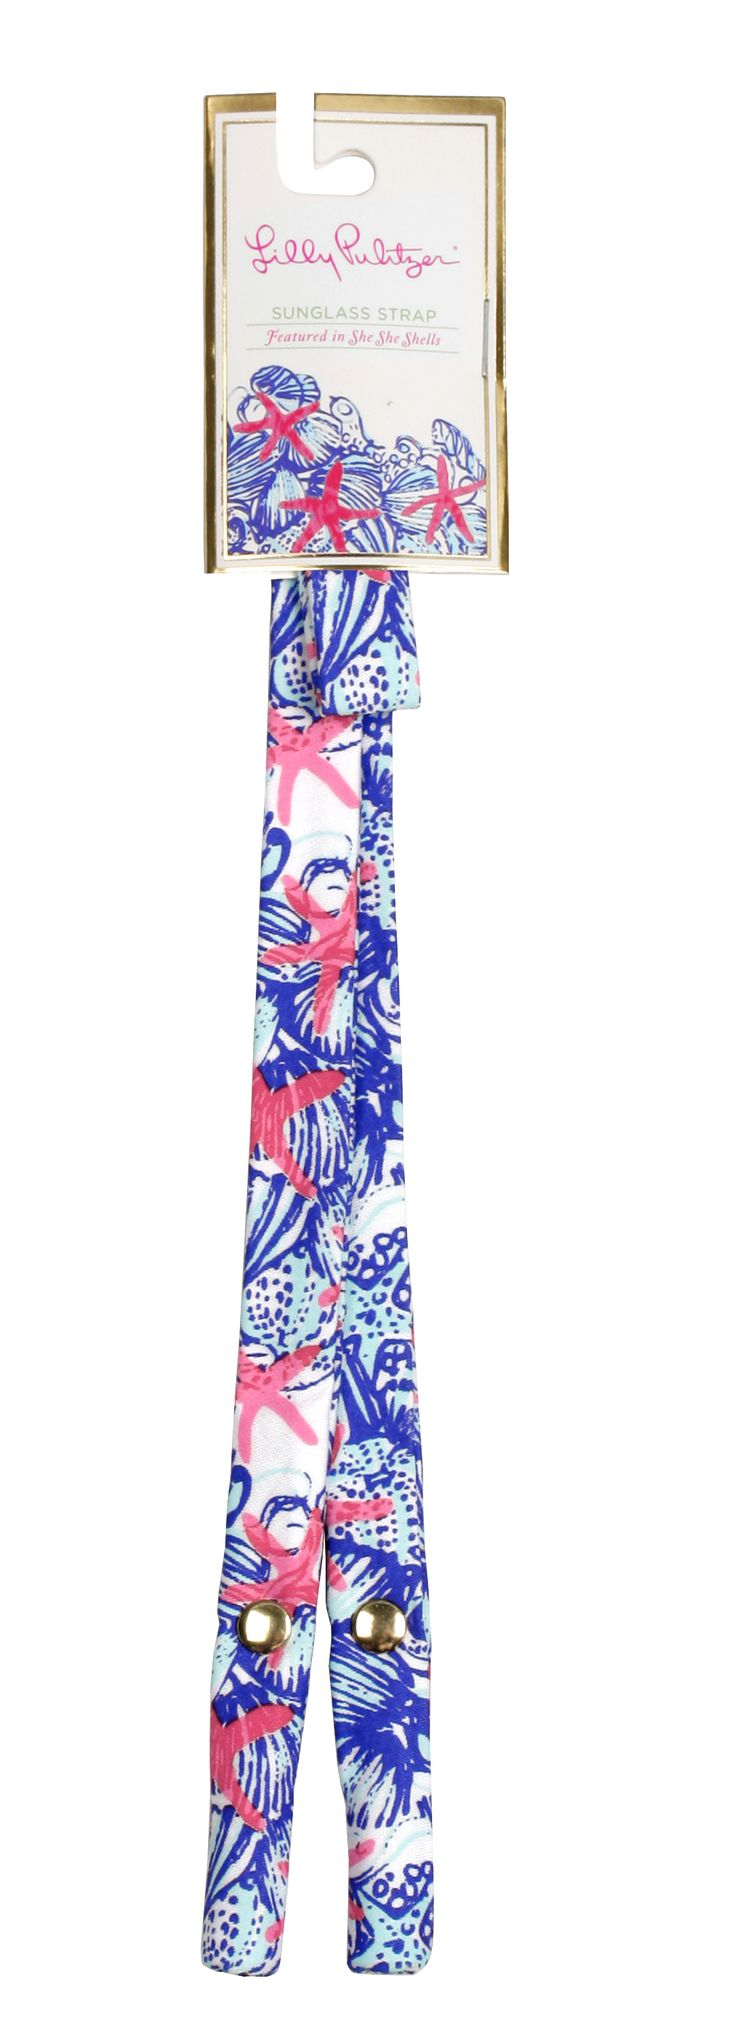 Lilly Pulitzer: She She Shells Sunglasses Strap   http://www.stitchartisan.com/lilly-pulitzer/lilly-pulitzer-she-she-shells-sunglasses-strap